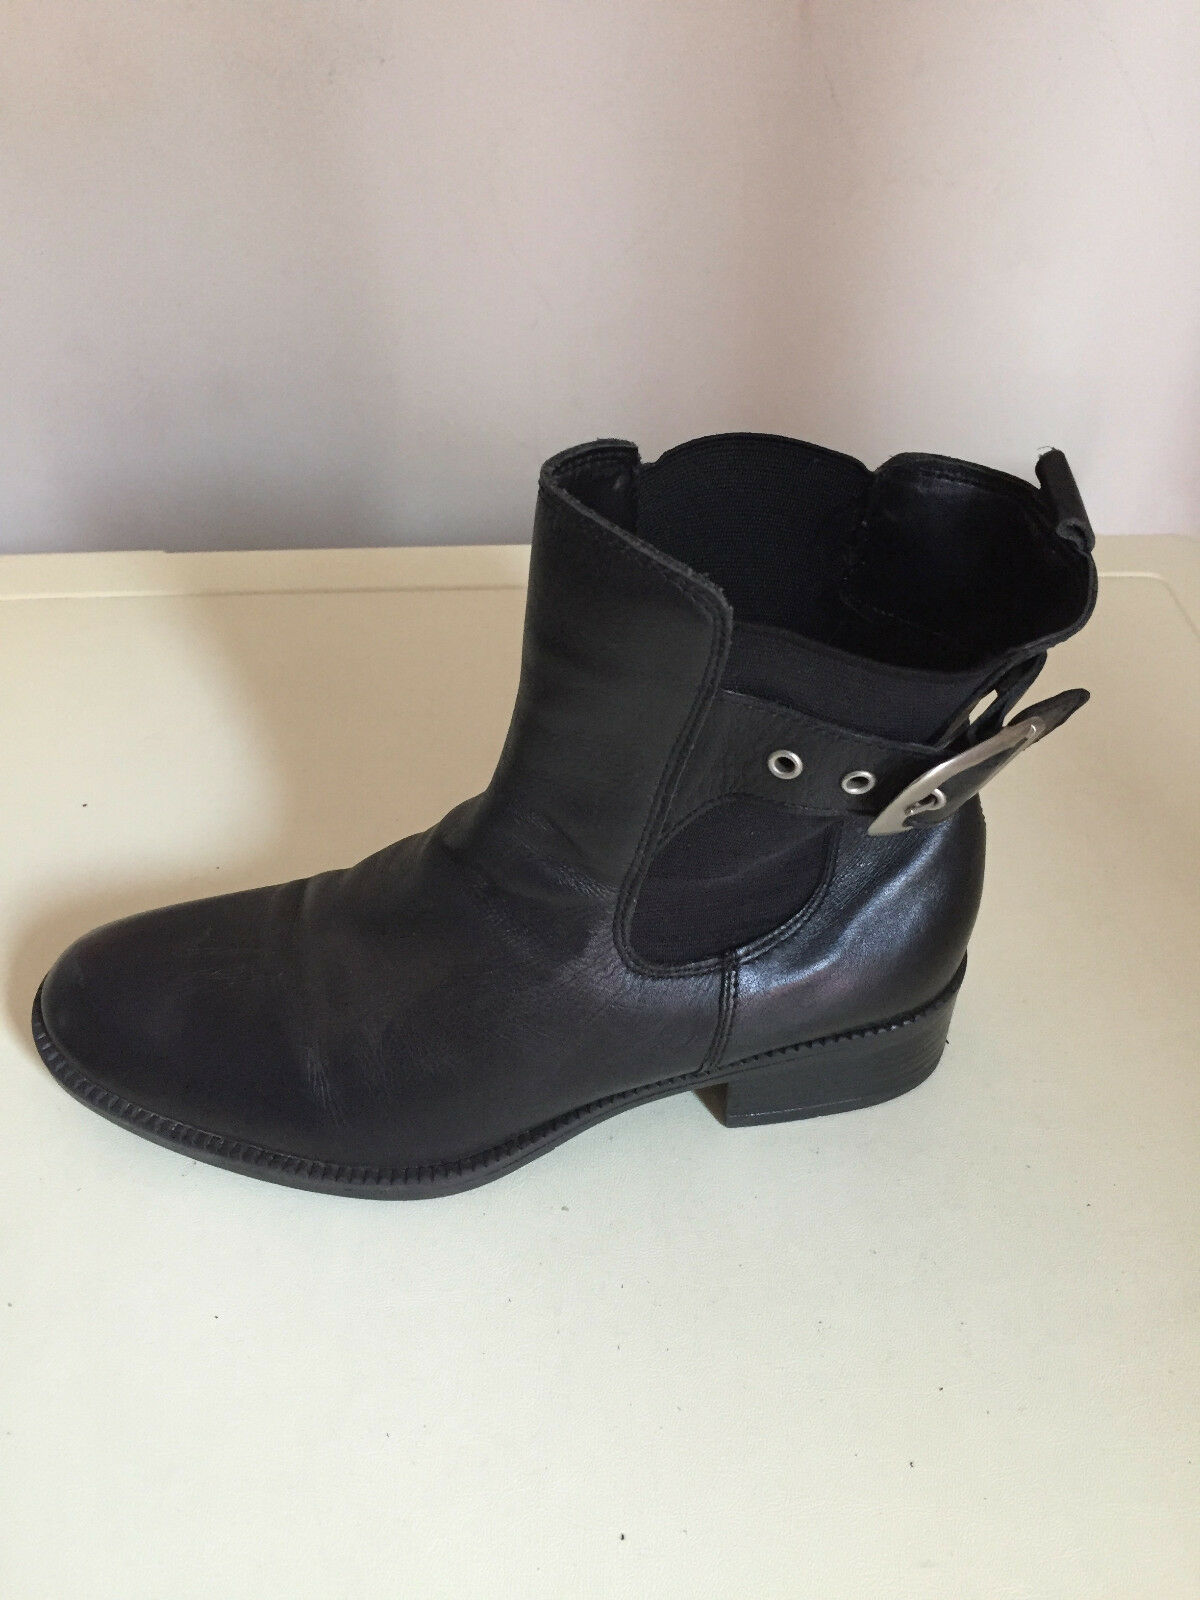 femmes LILLEY AND SKINNER ANKLE LEATHER bottes Taille 5